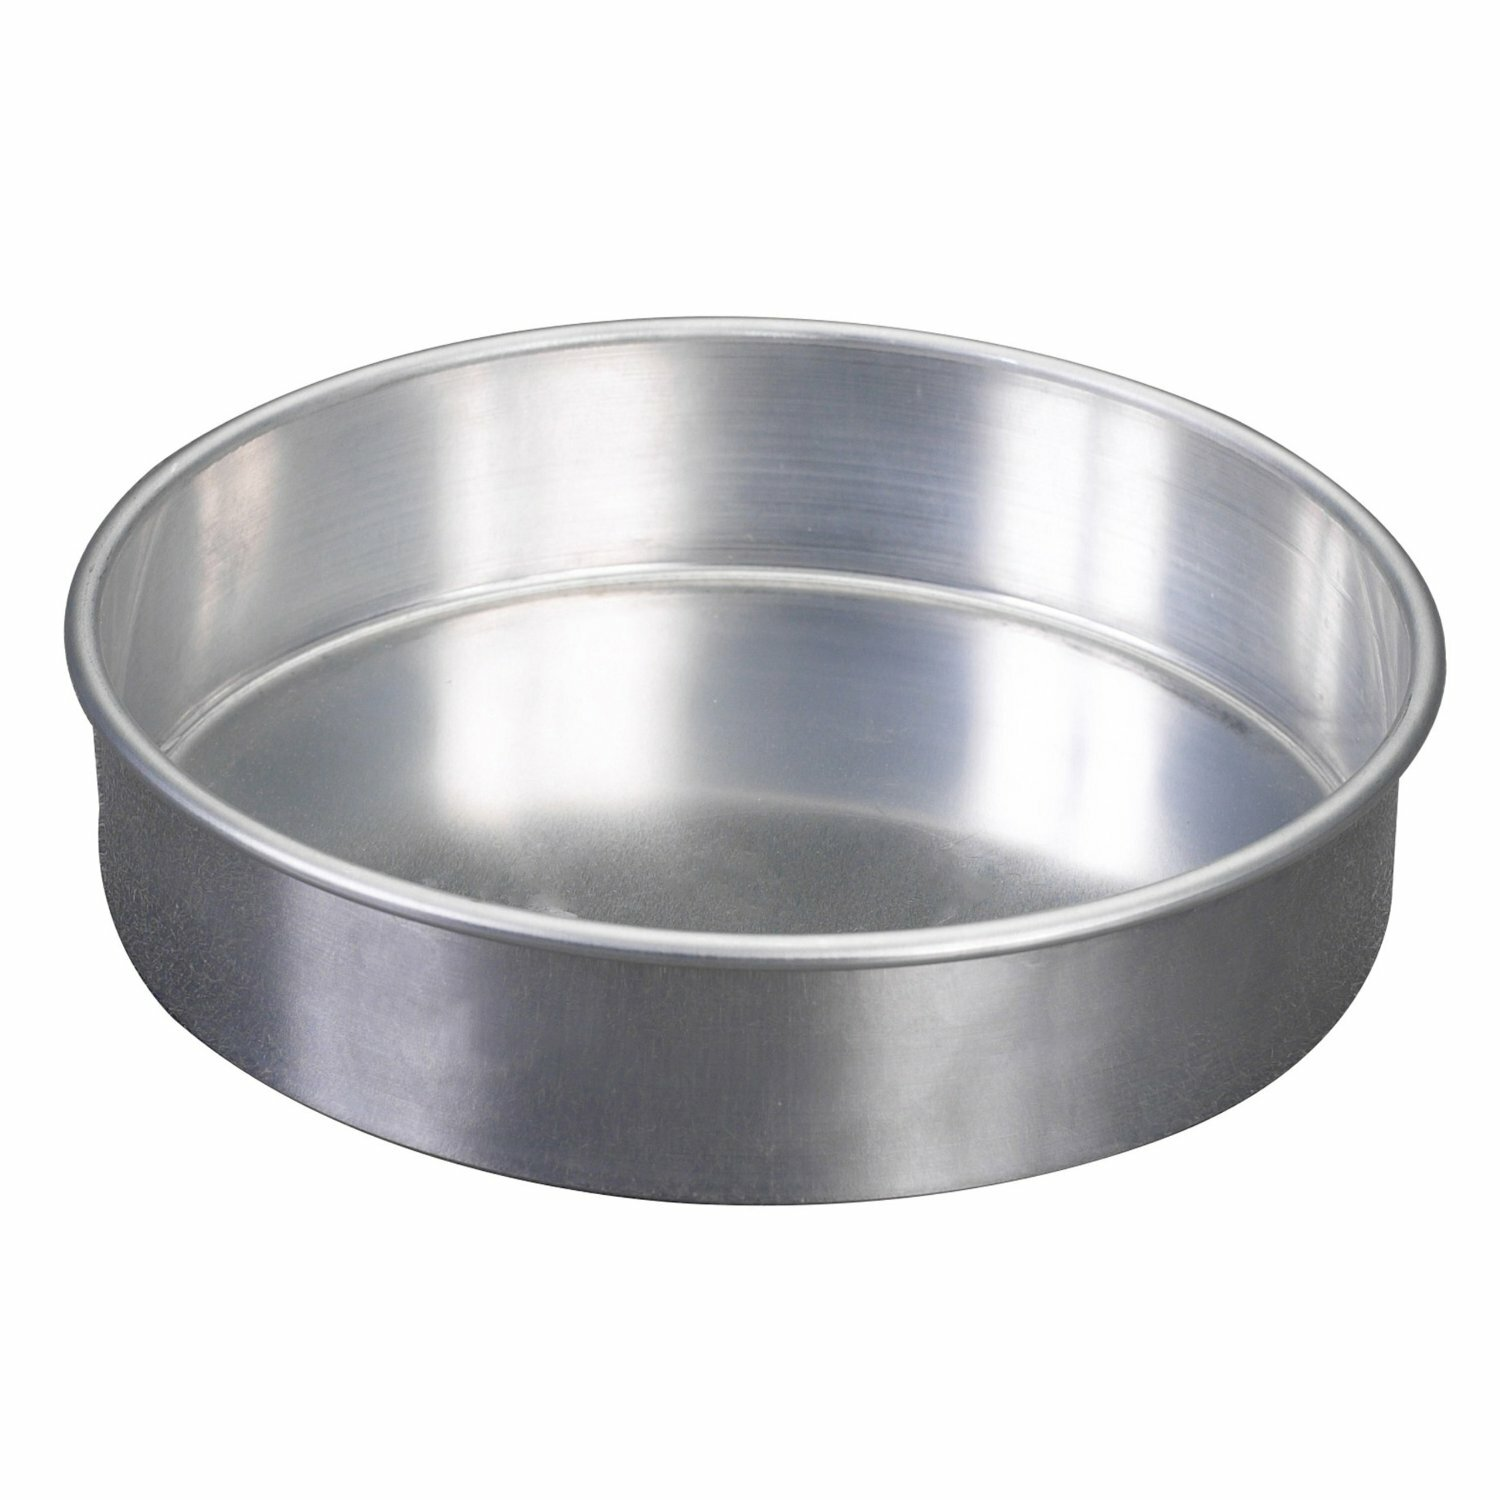 Cake Pans For Sale